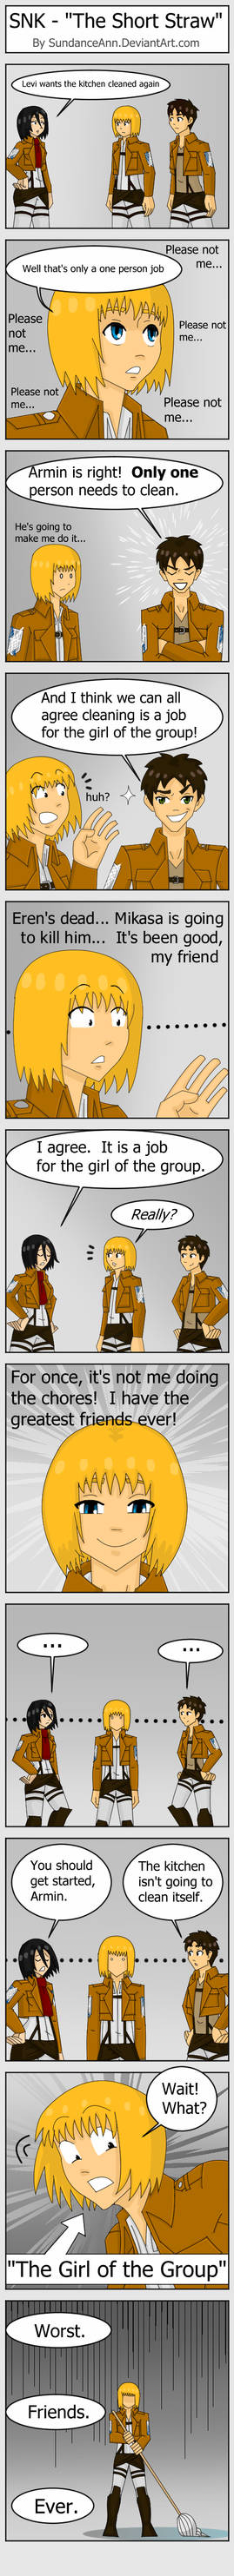 SNK - The Short Straw